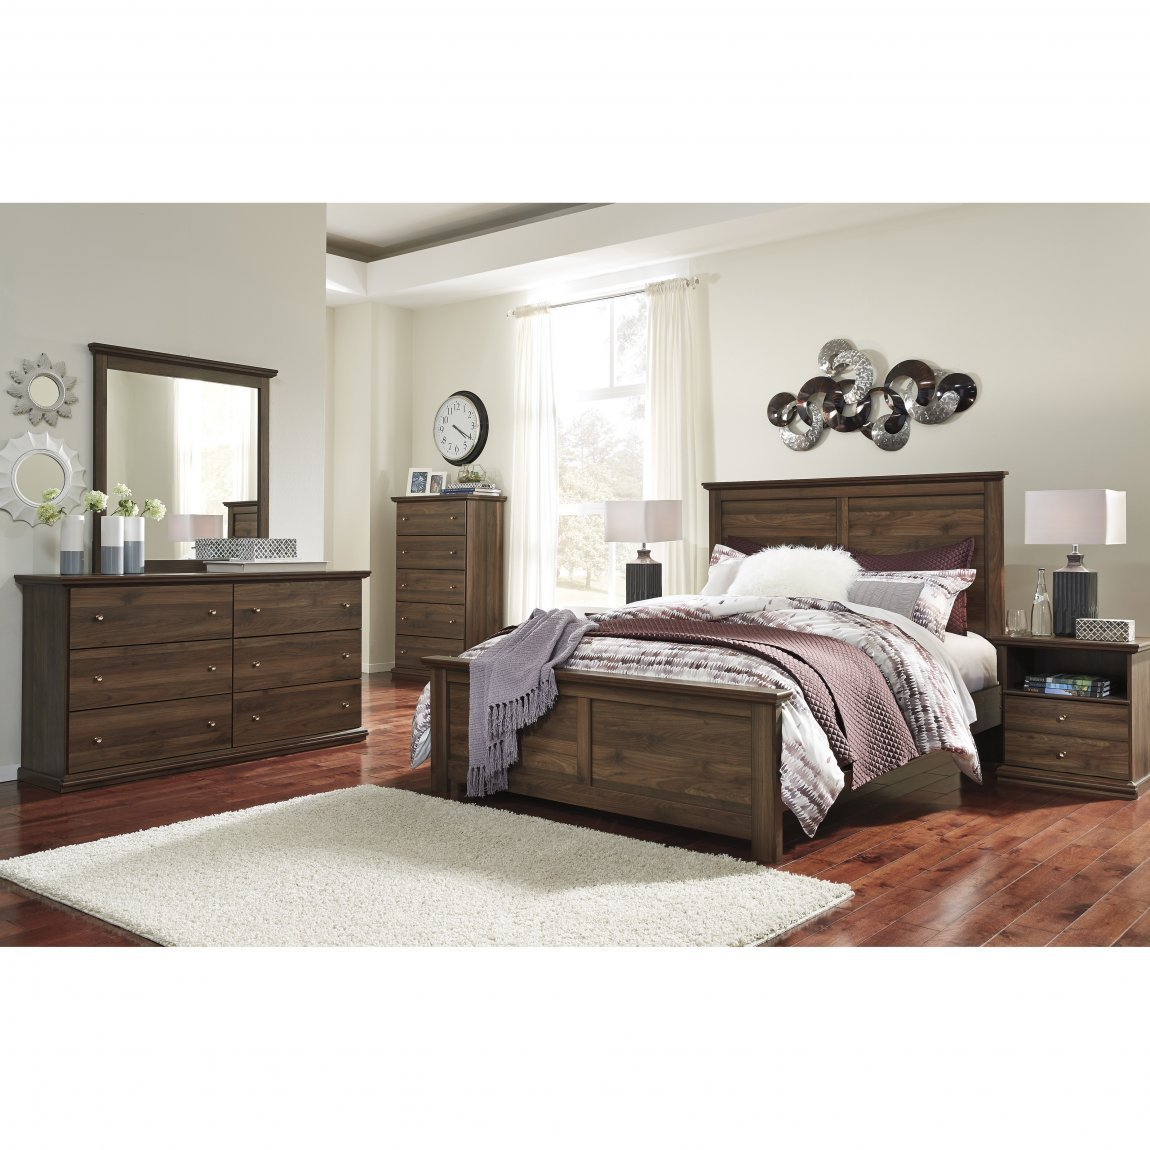 Best Reclaimed Wood Bedroom Set White Distressed Furniture Sets With Pictures